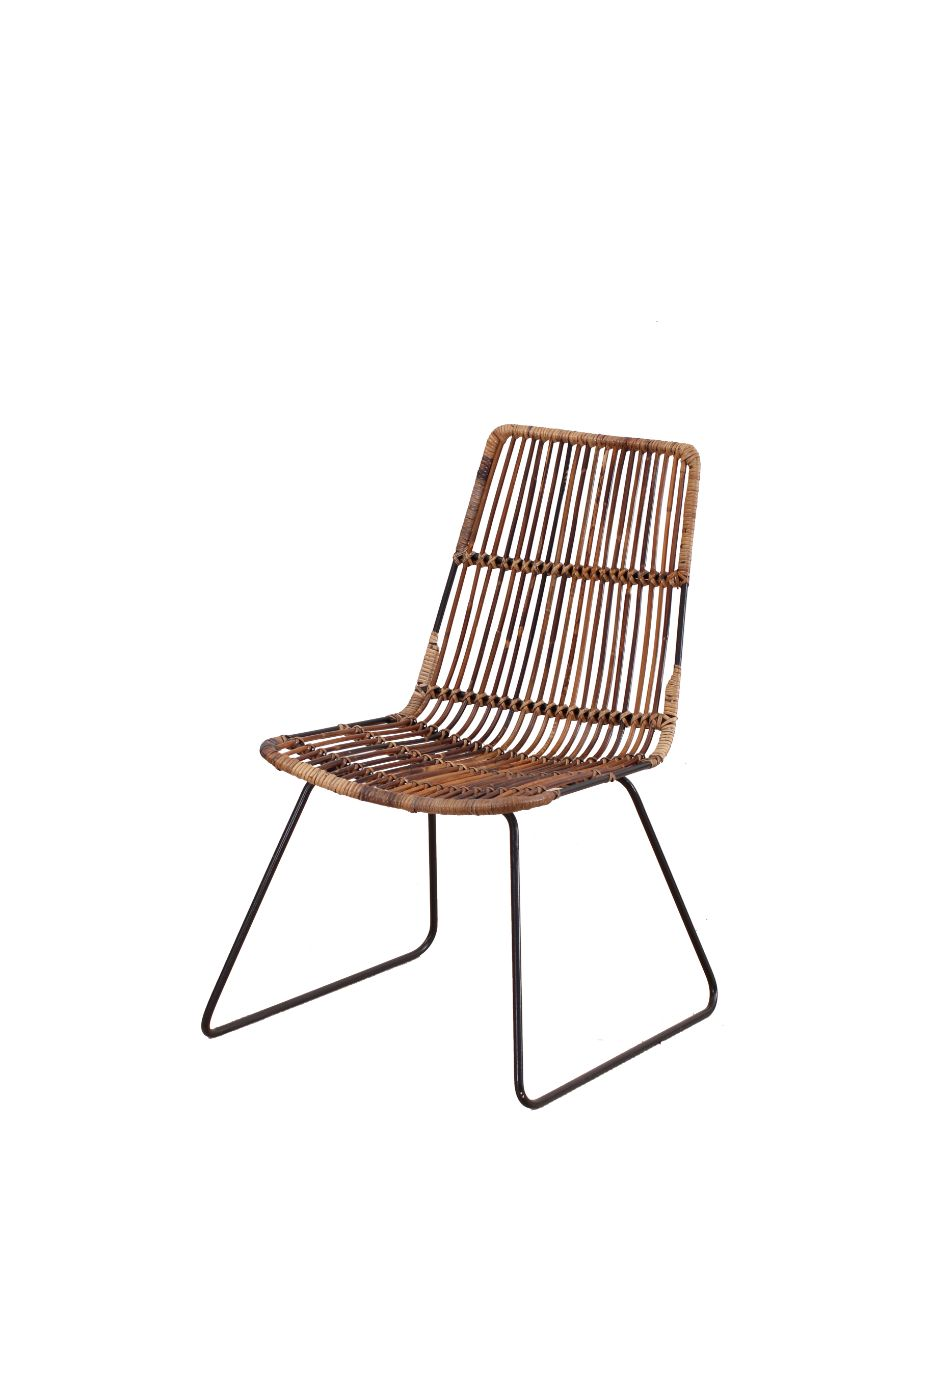 Rattan Furniture 65